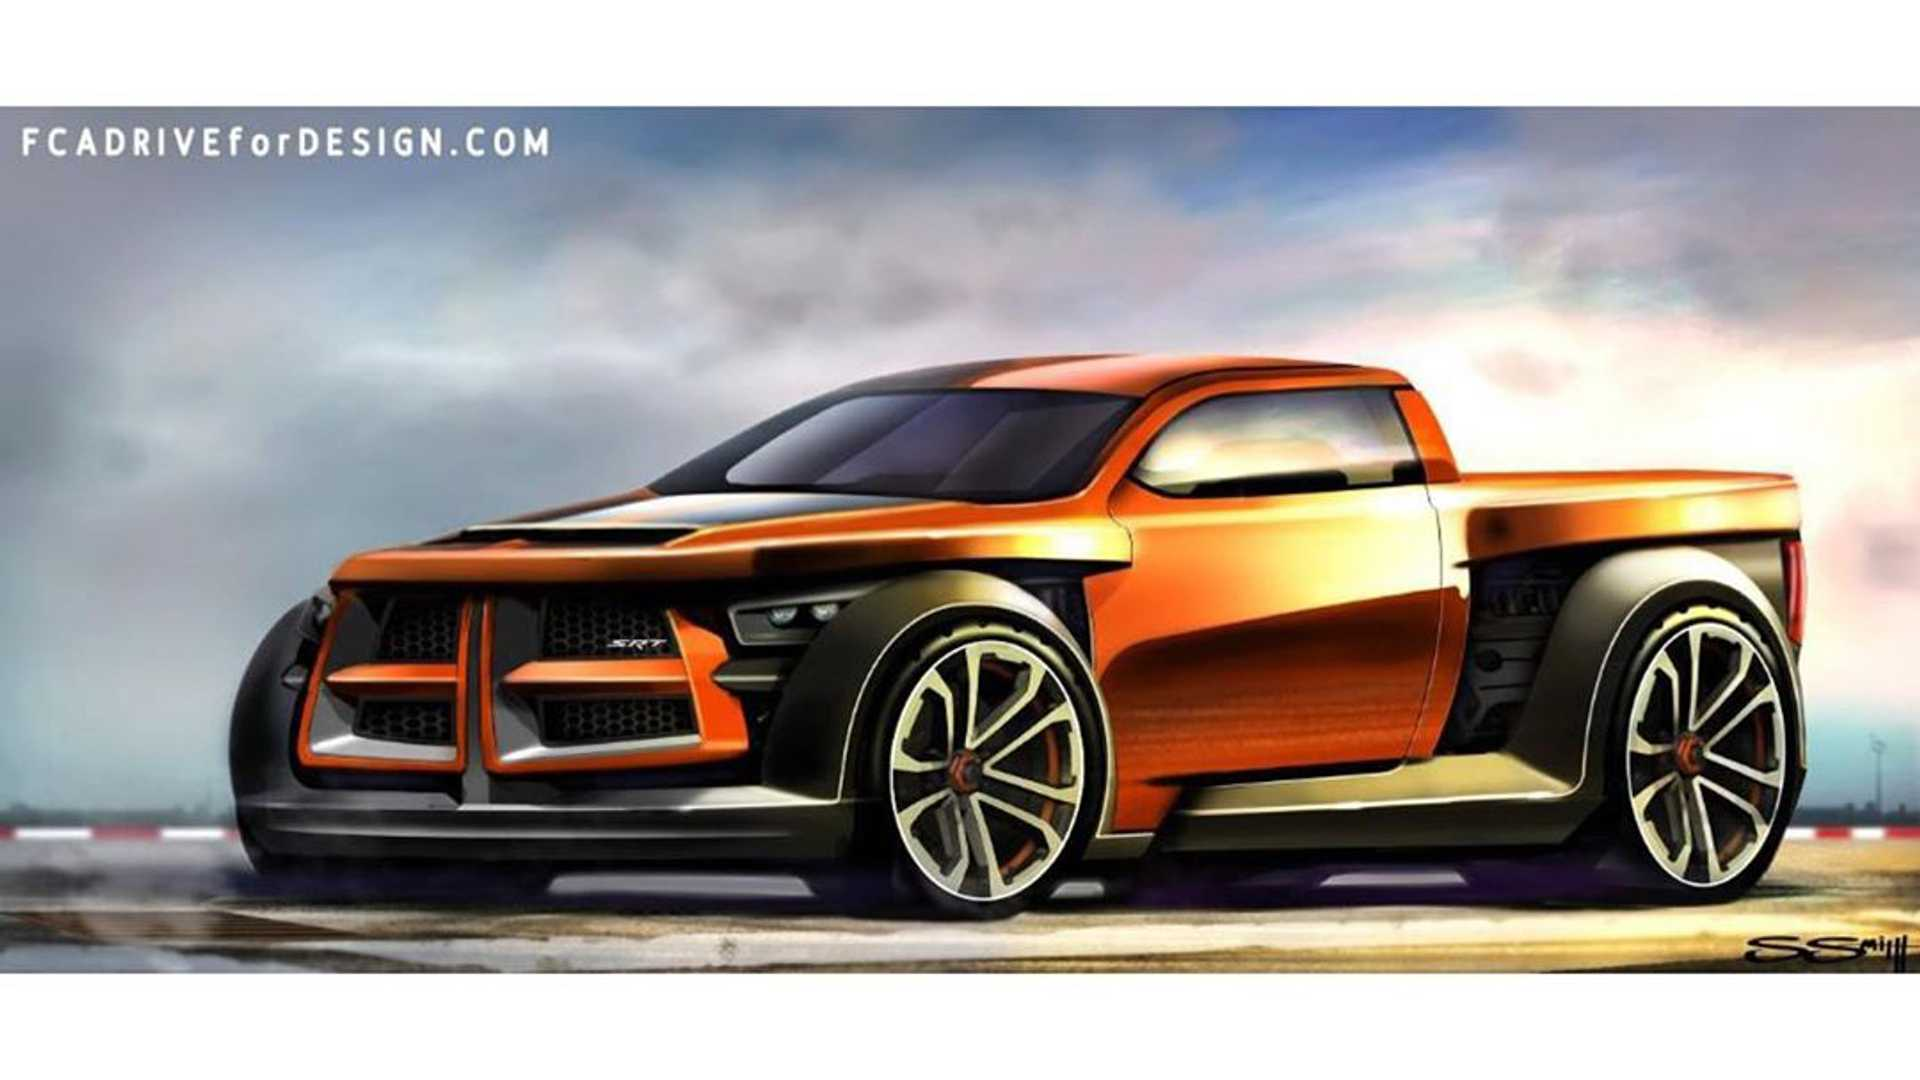 fca-drive-for-design-ram-sketch-battle-9